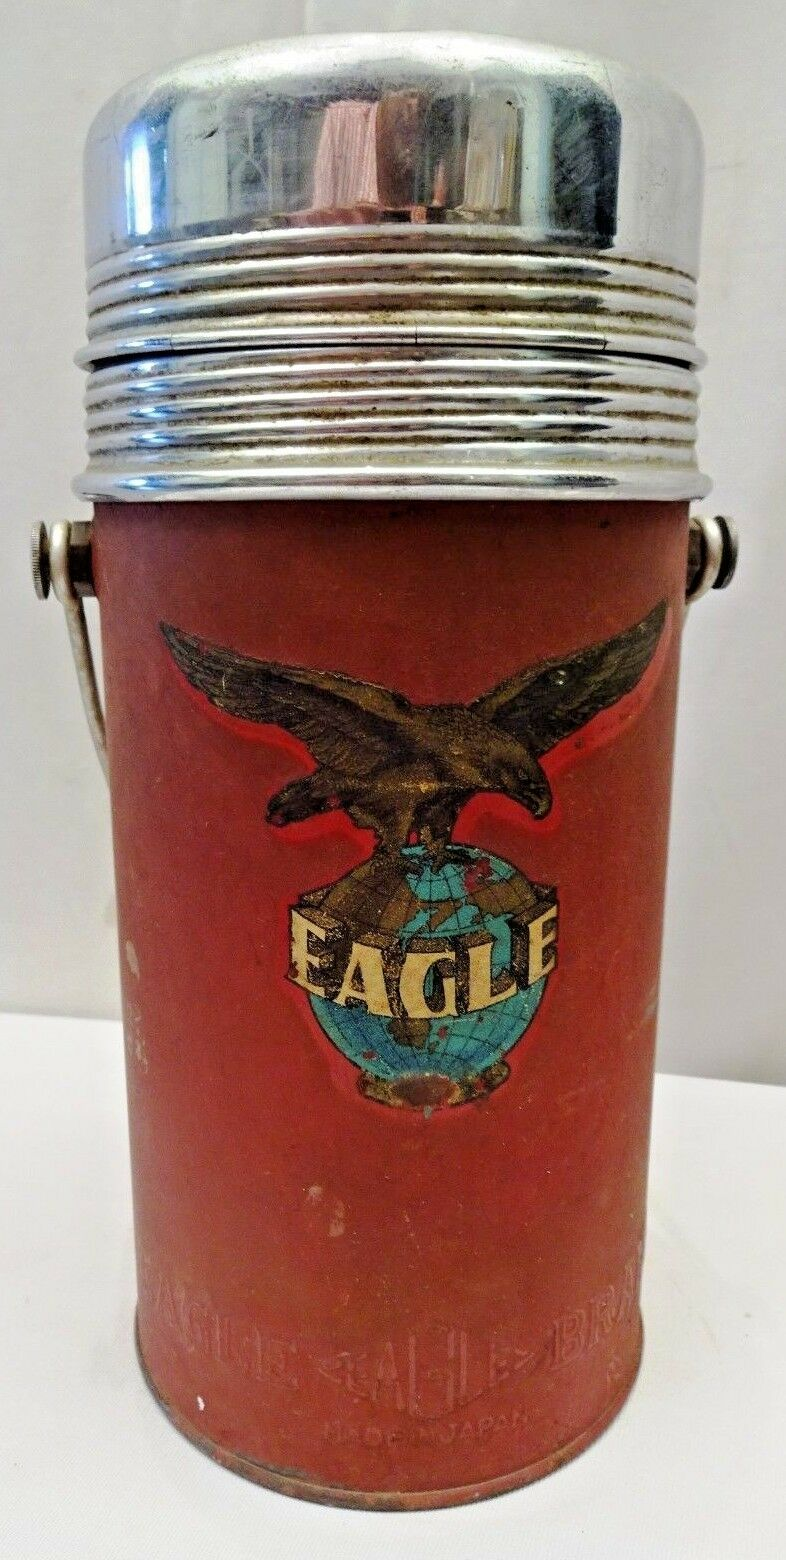 VINTAGE THERMOS FLASK VACUUM BOTTLE EAGLE BRAND MADE IN JAPAN RETRO COLLECTIBLES